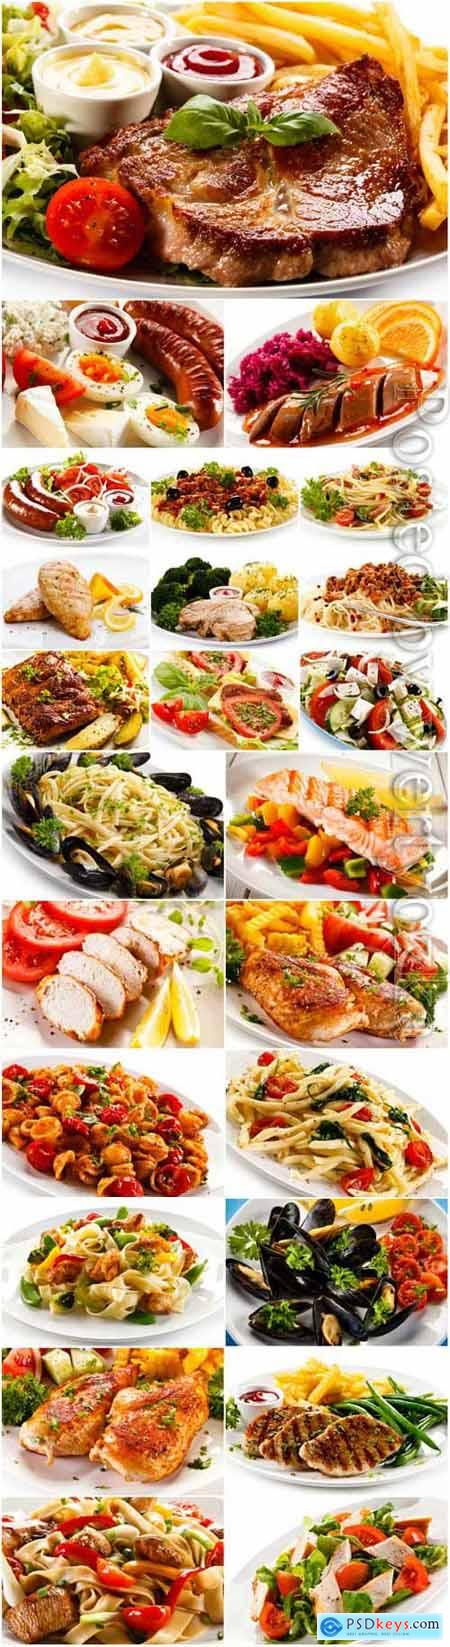 Delicious food, meat and vegetables stock photo